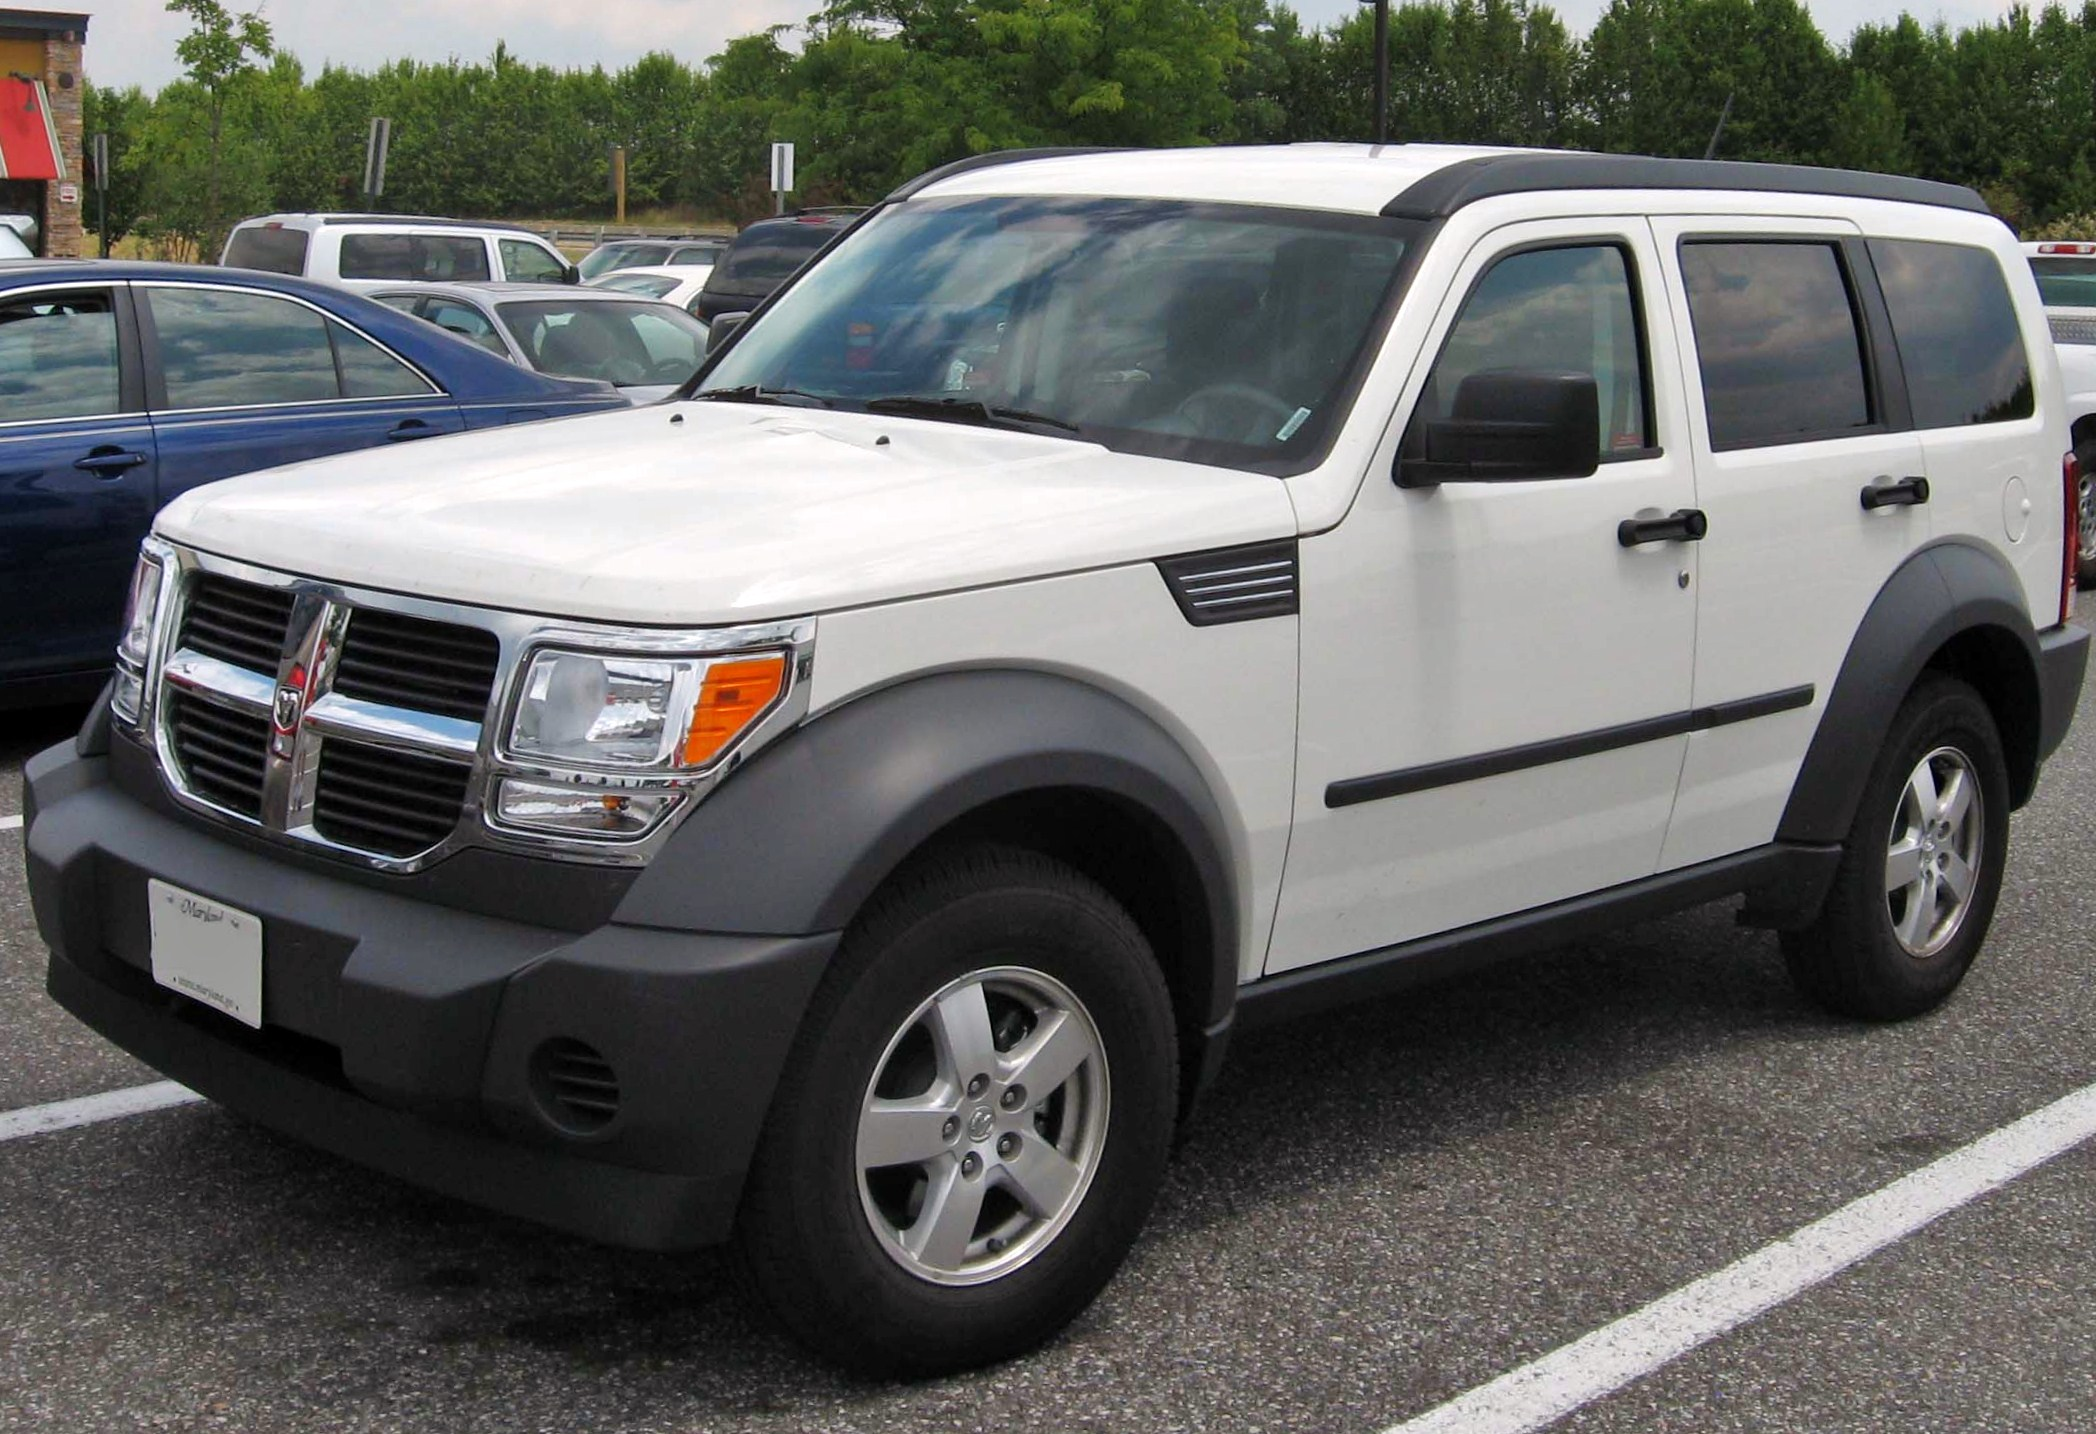 File:07 Dodge Nitro SXT.jpg - Wikimedia Commons